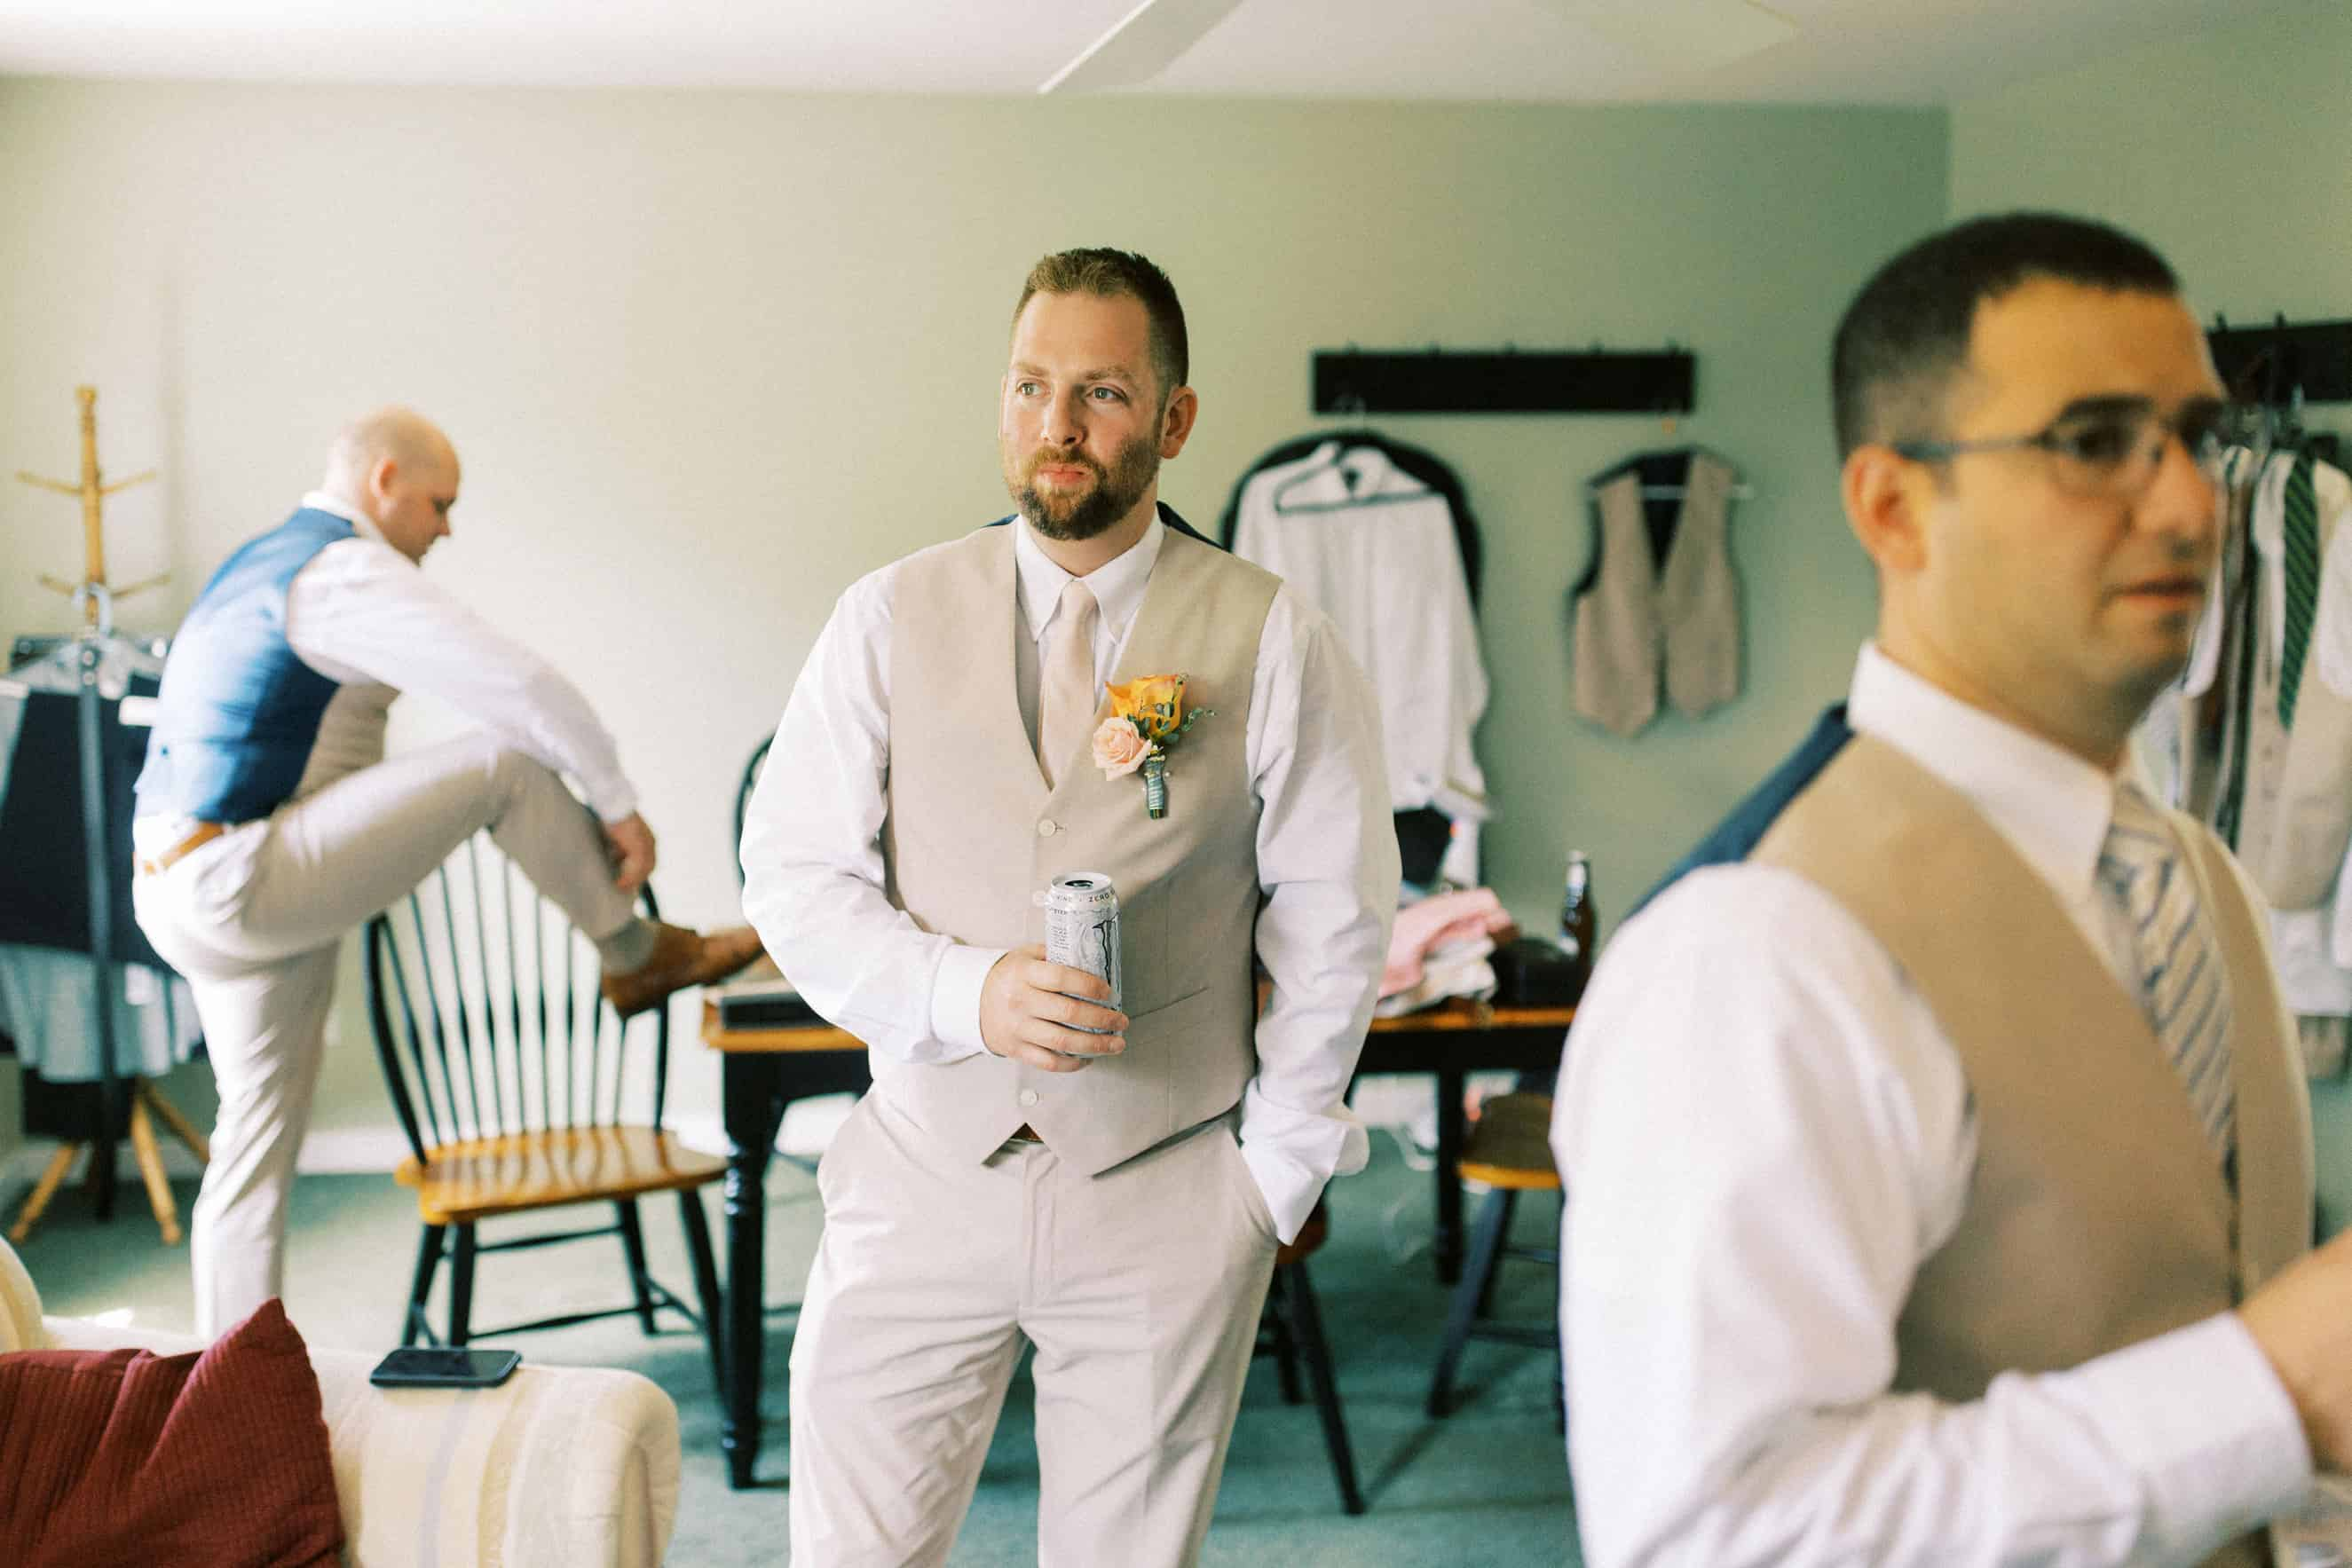 Wedding Photographer at Harvest View Barn at Hershey Farms